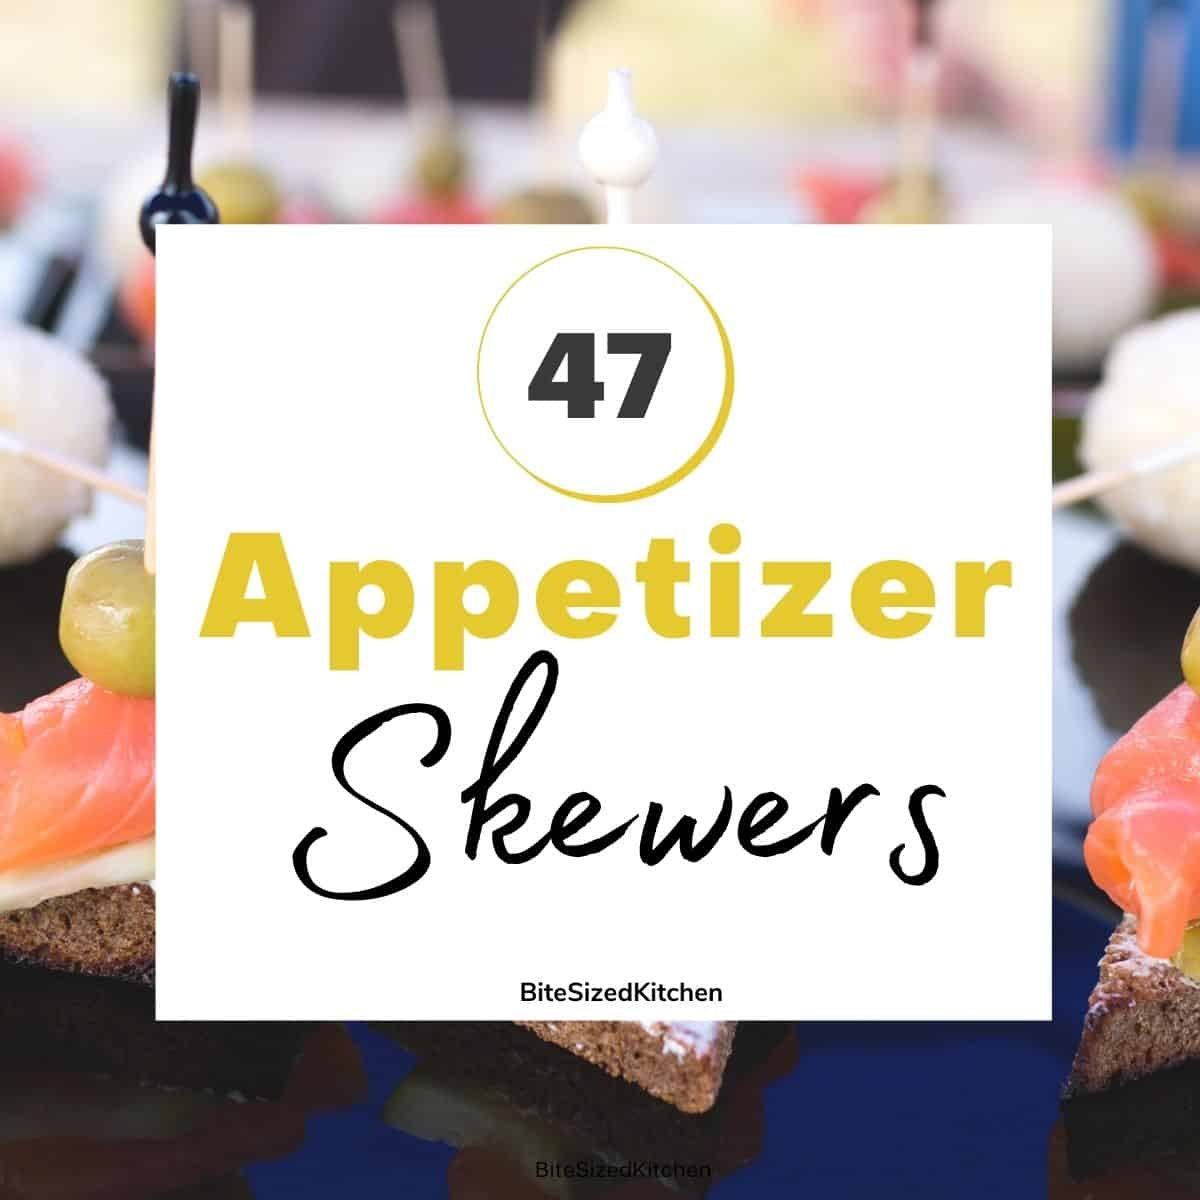 "appetizer skewers with text overlay saying ""47 appetizer skewers""."